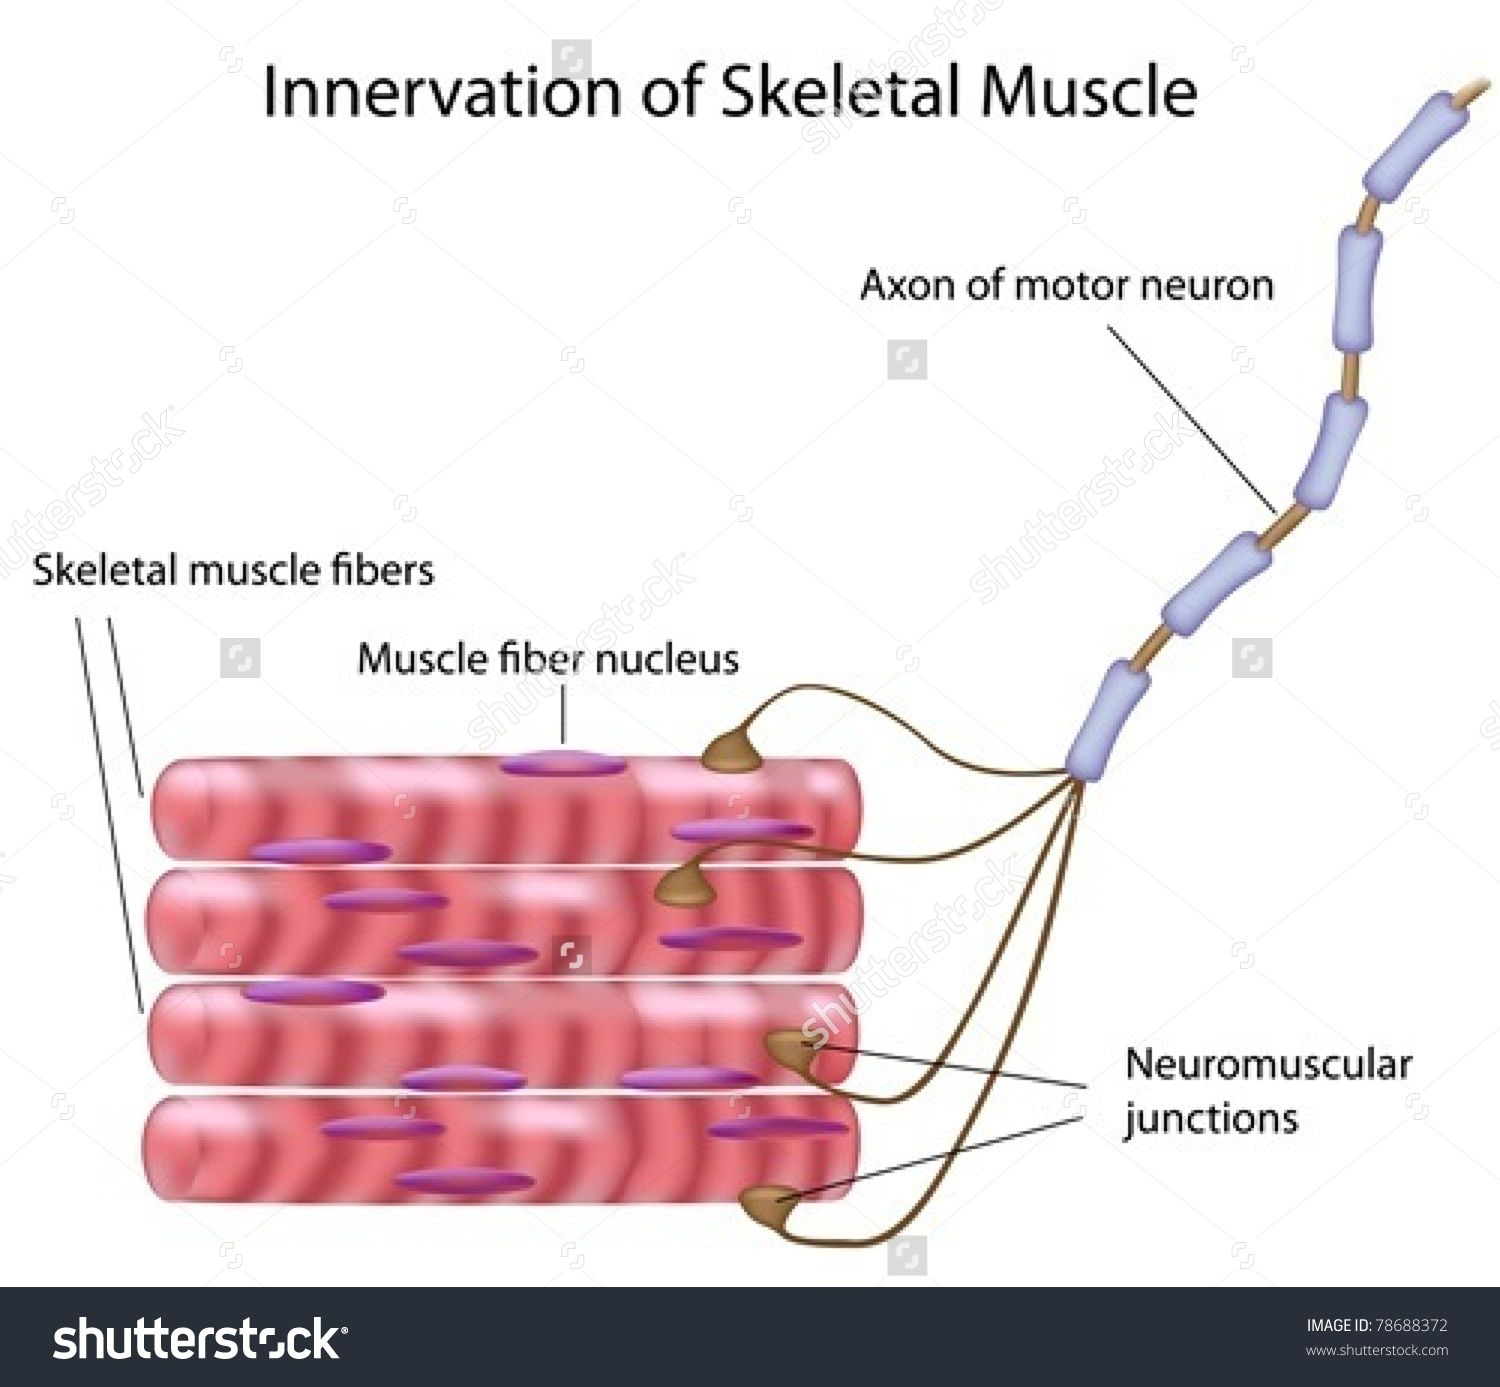 pin by jessica joyce on systems: musculoskeletal | motor neuron